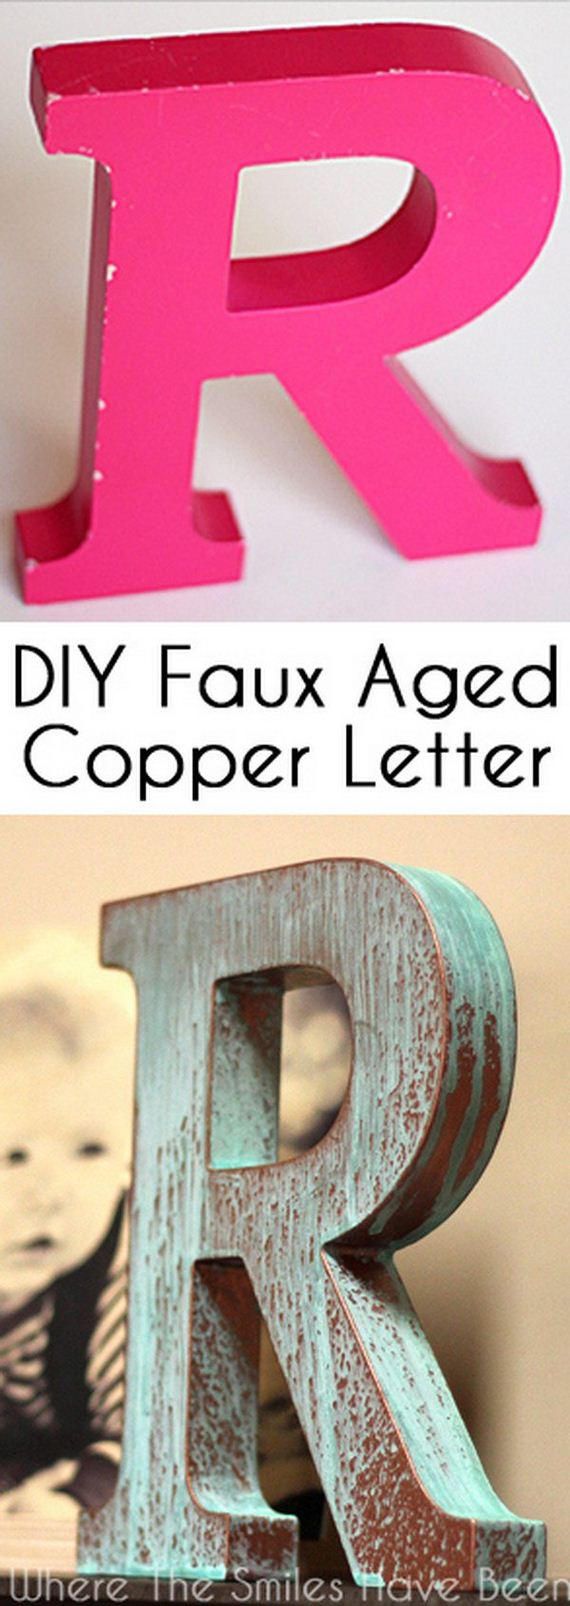 36-diy-letter-ideas-tutorials